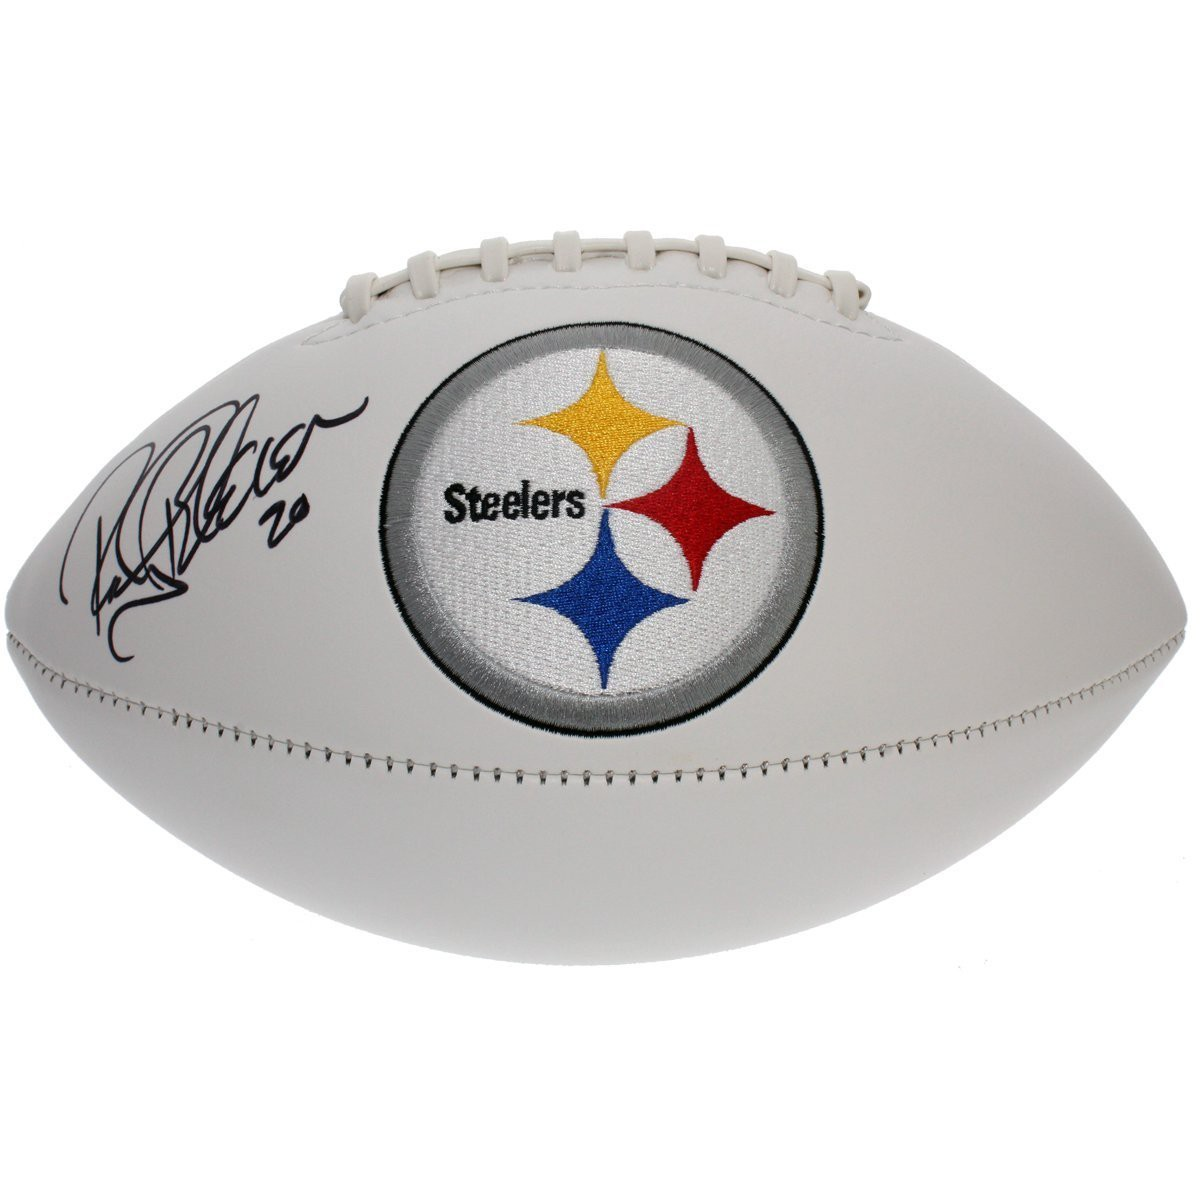 e64318b05 Rocky Bleier Autographed Signed Pittsburgh Steelers White Panel Football -  JSA Certified Authentic